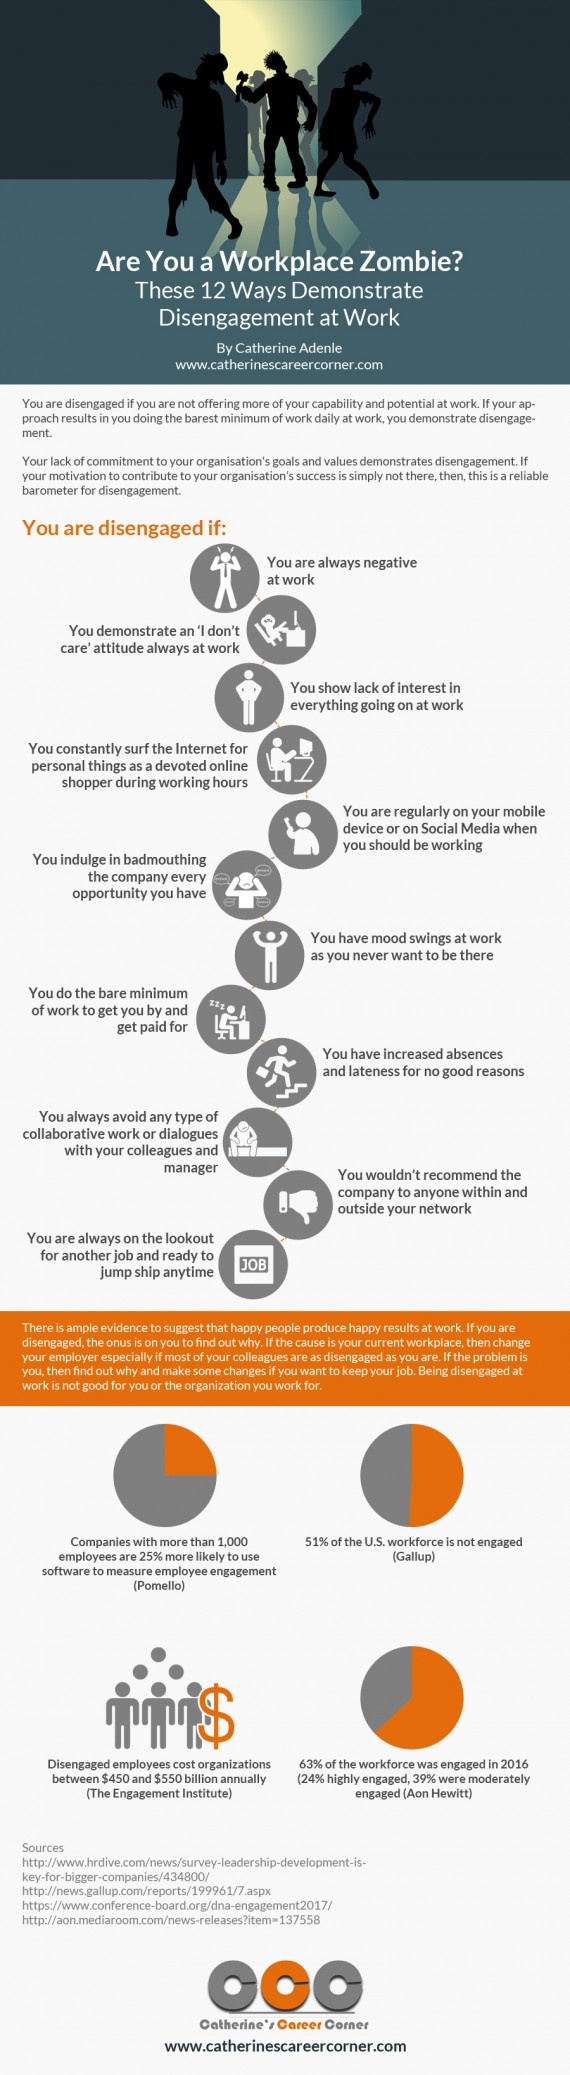 Are You a Workplace Zombie? 12 Ways You Demonstrate Disengagement at Work (Infographic)